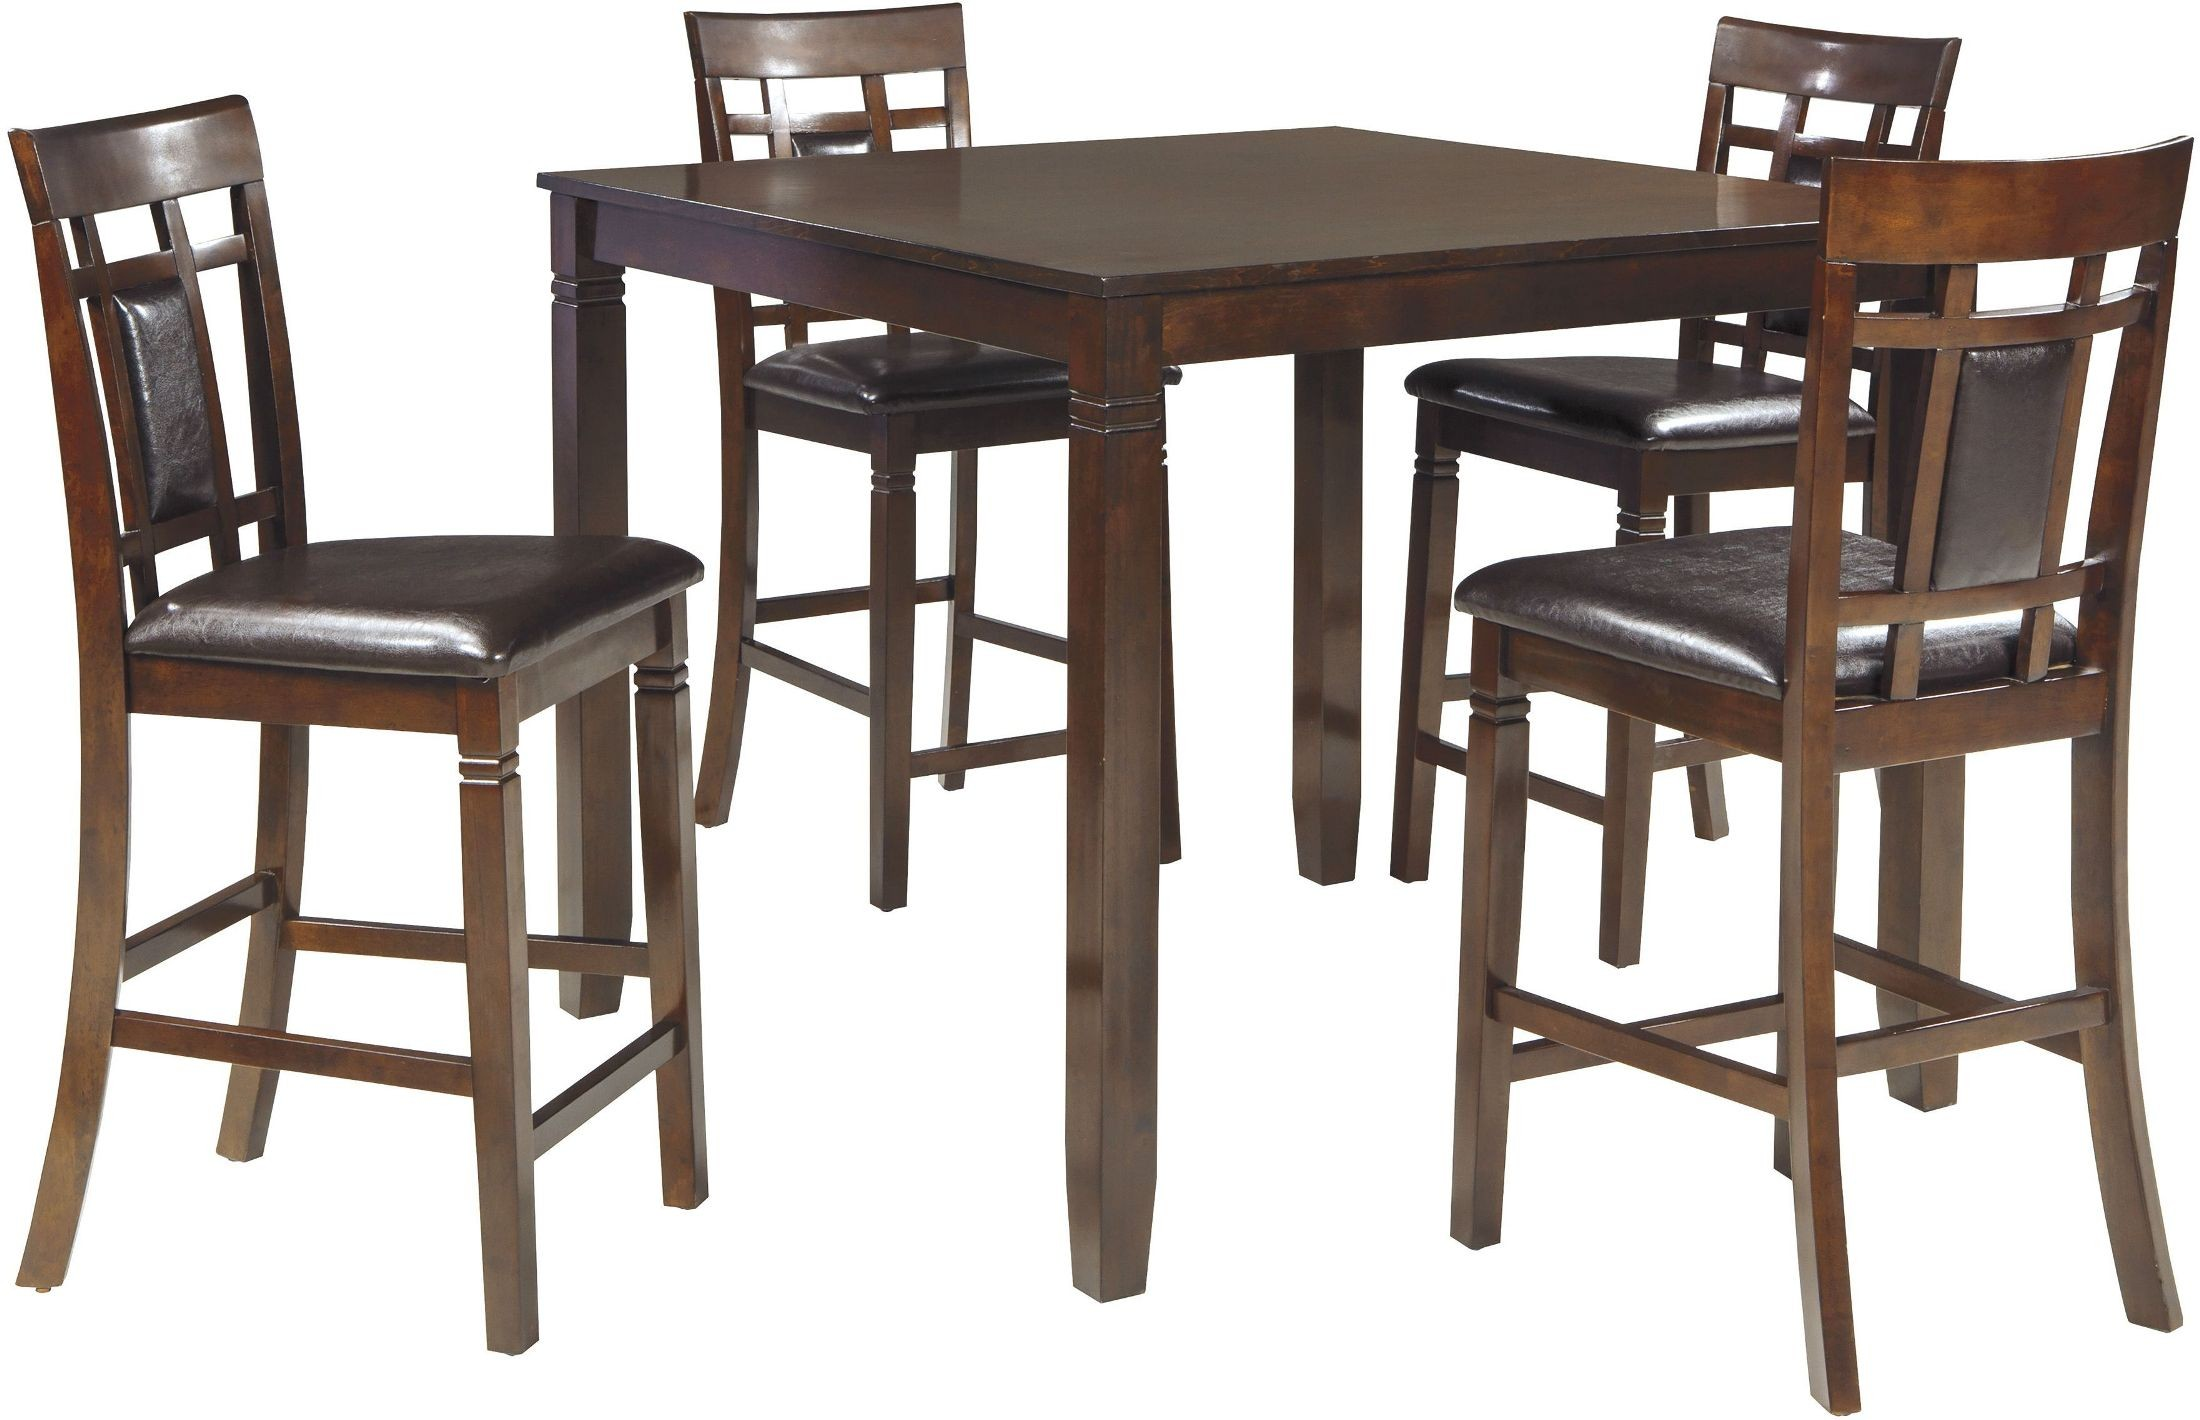 Bennox Brown 5 Piece Counter Height Dining Room Set from Ashley ...